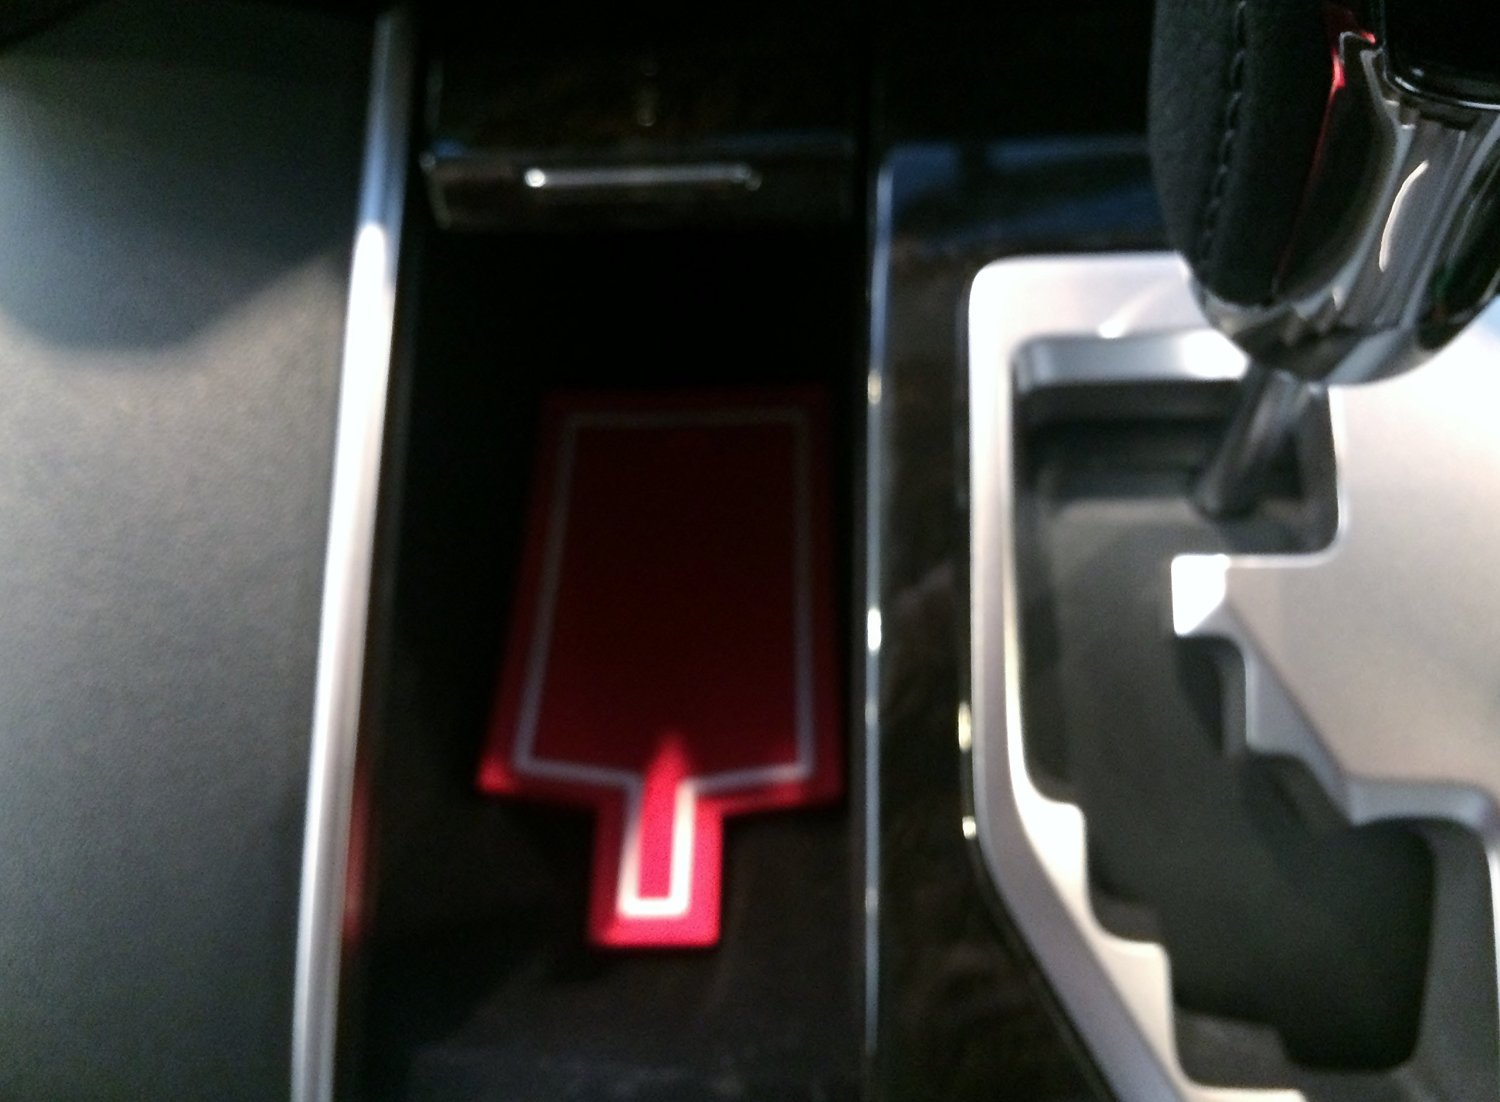 KINMEI Toyota 30 series Alphard ALPHARD RED large high-grade console box car specially designed interior door pocket mat drink holder anti-slip rubber non-slip storage space protection TOYOTAph-a